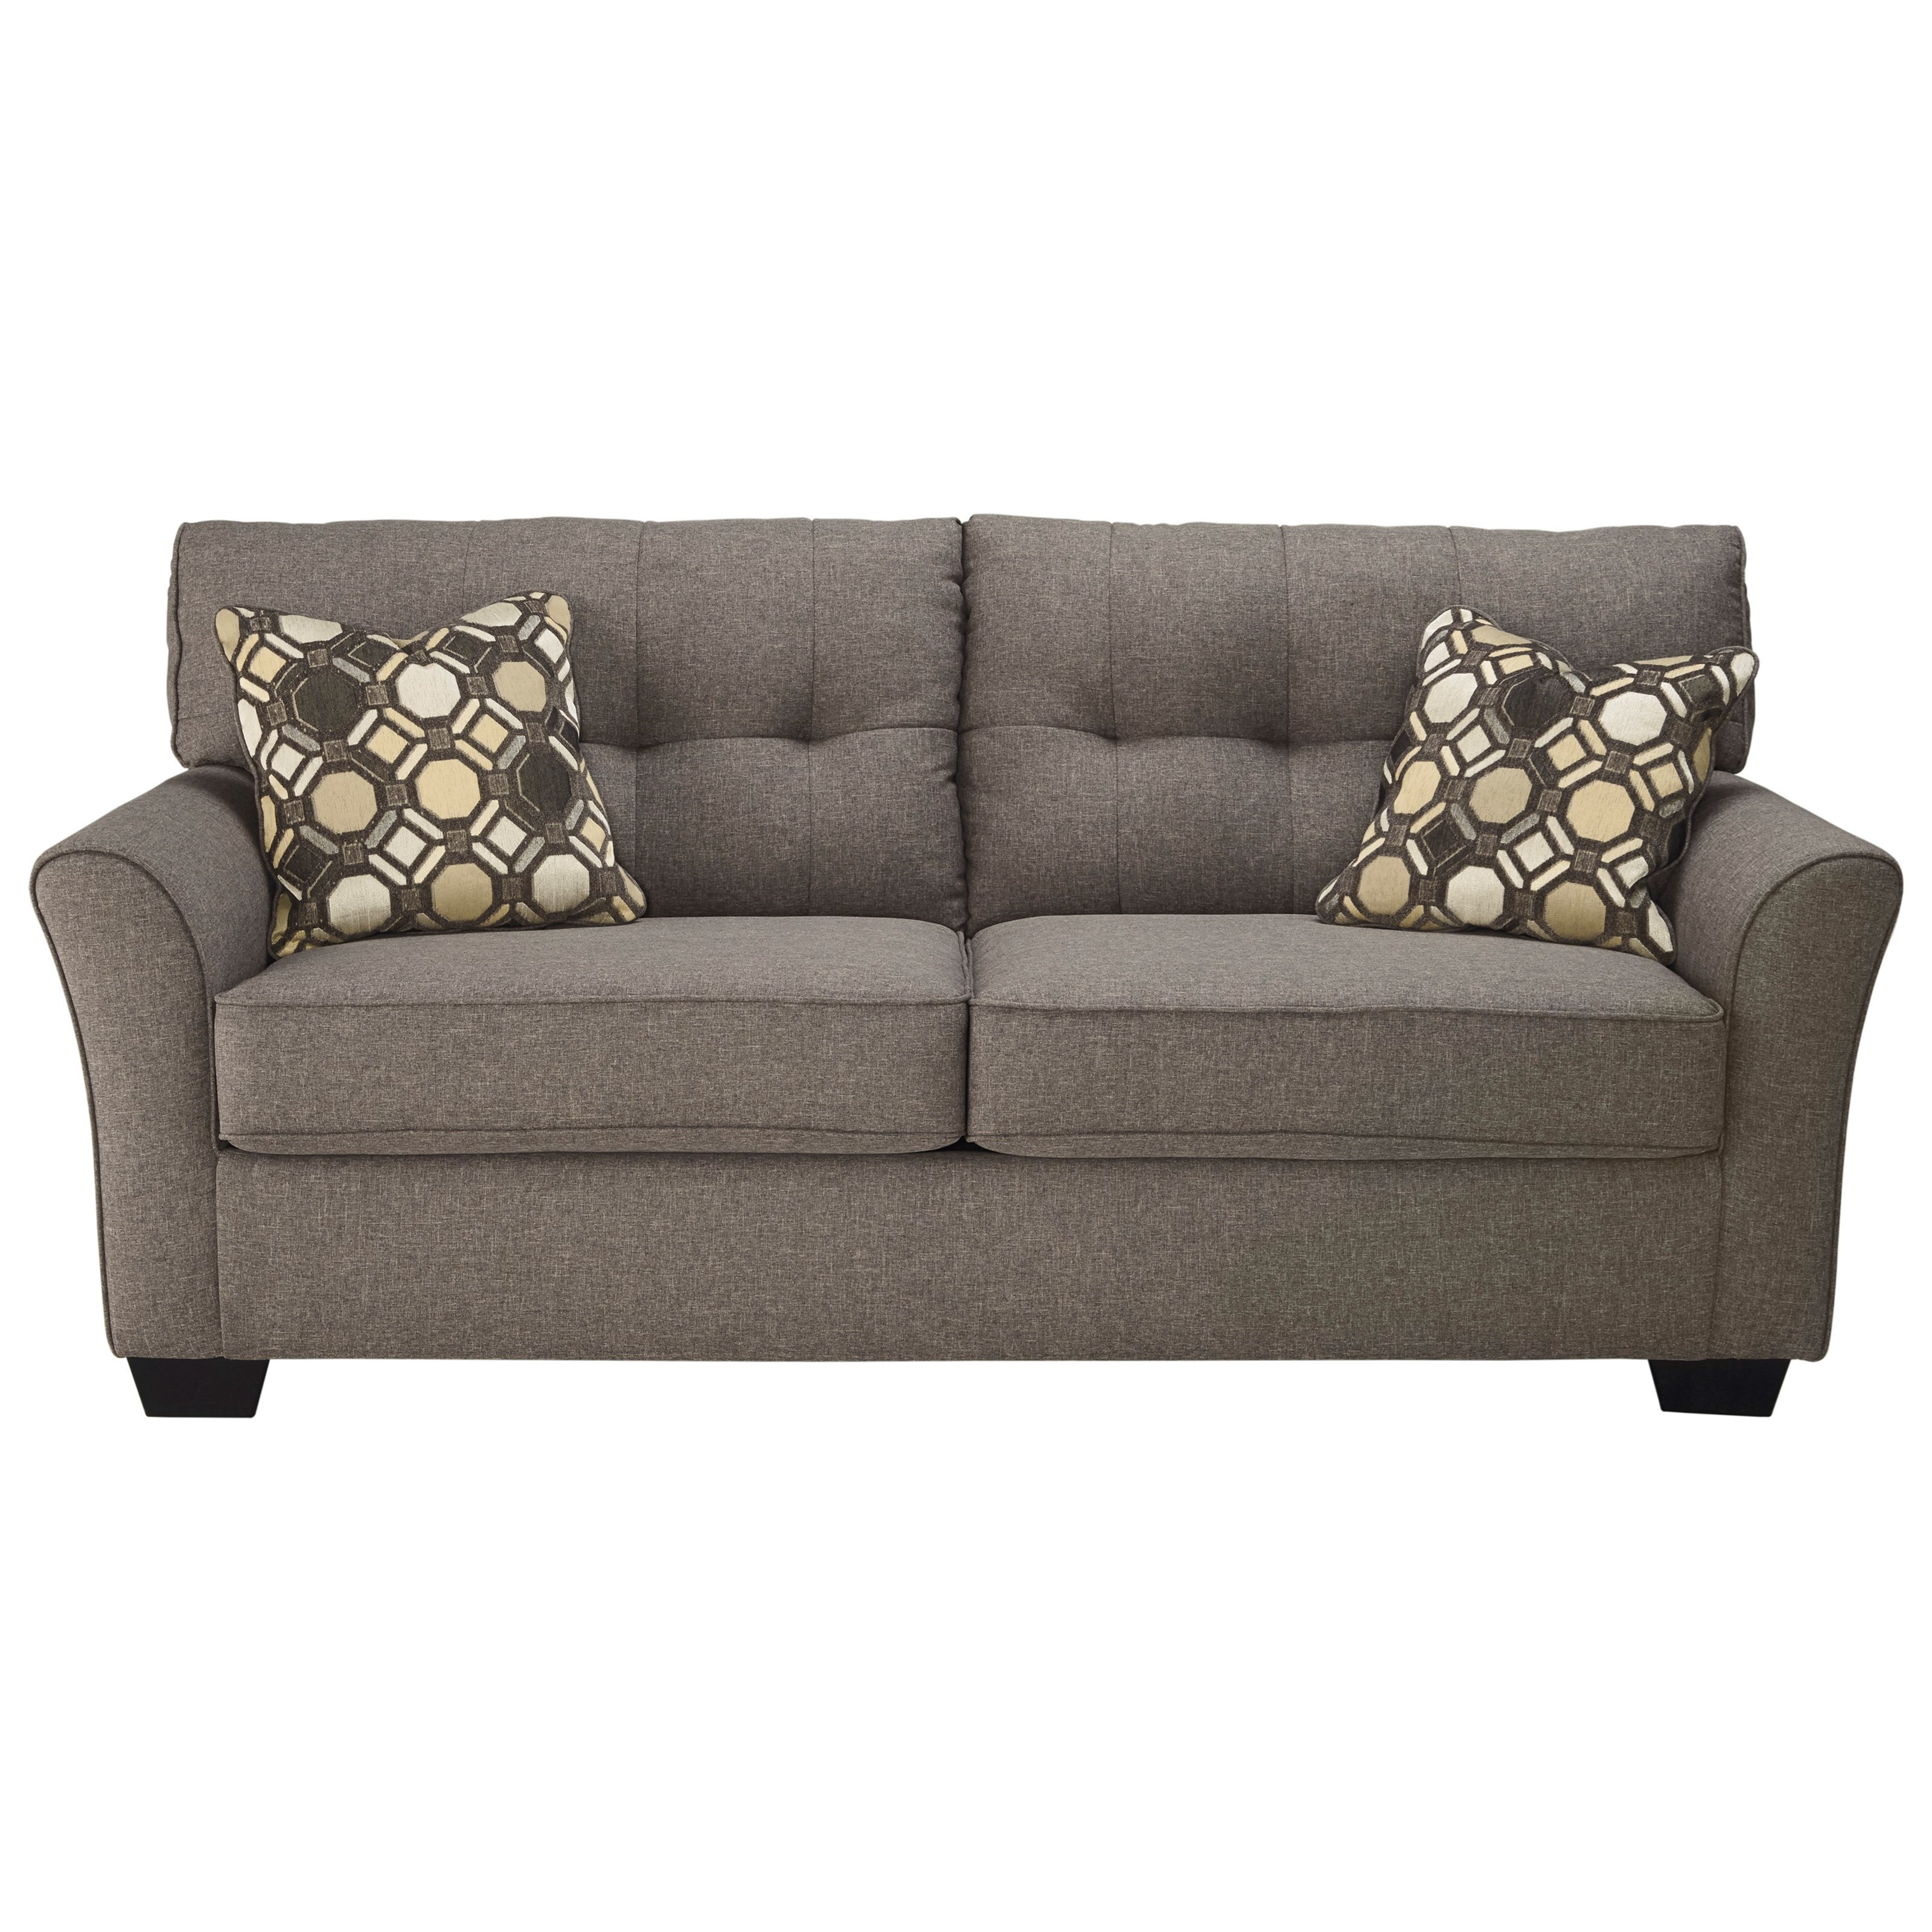 Tibbee Full Sofa Sleeper by Signature Design by Ashley at Northeast Factory Direct